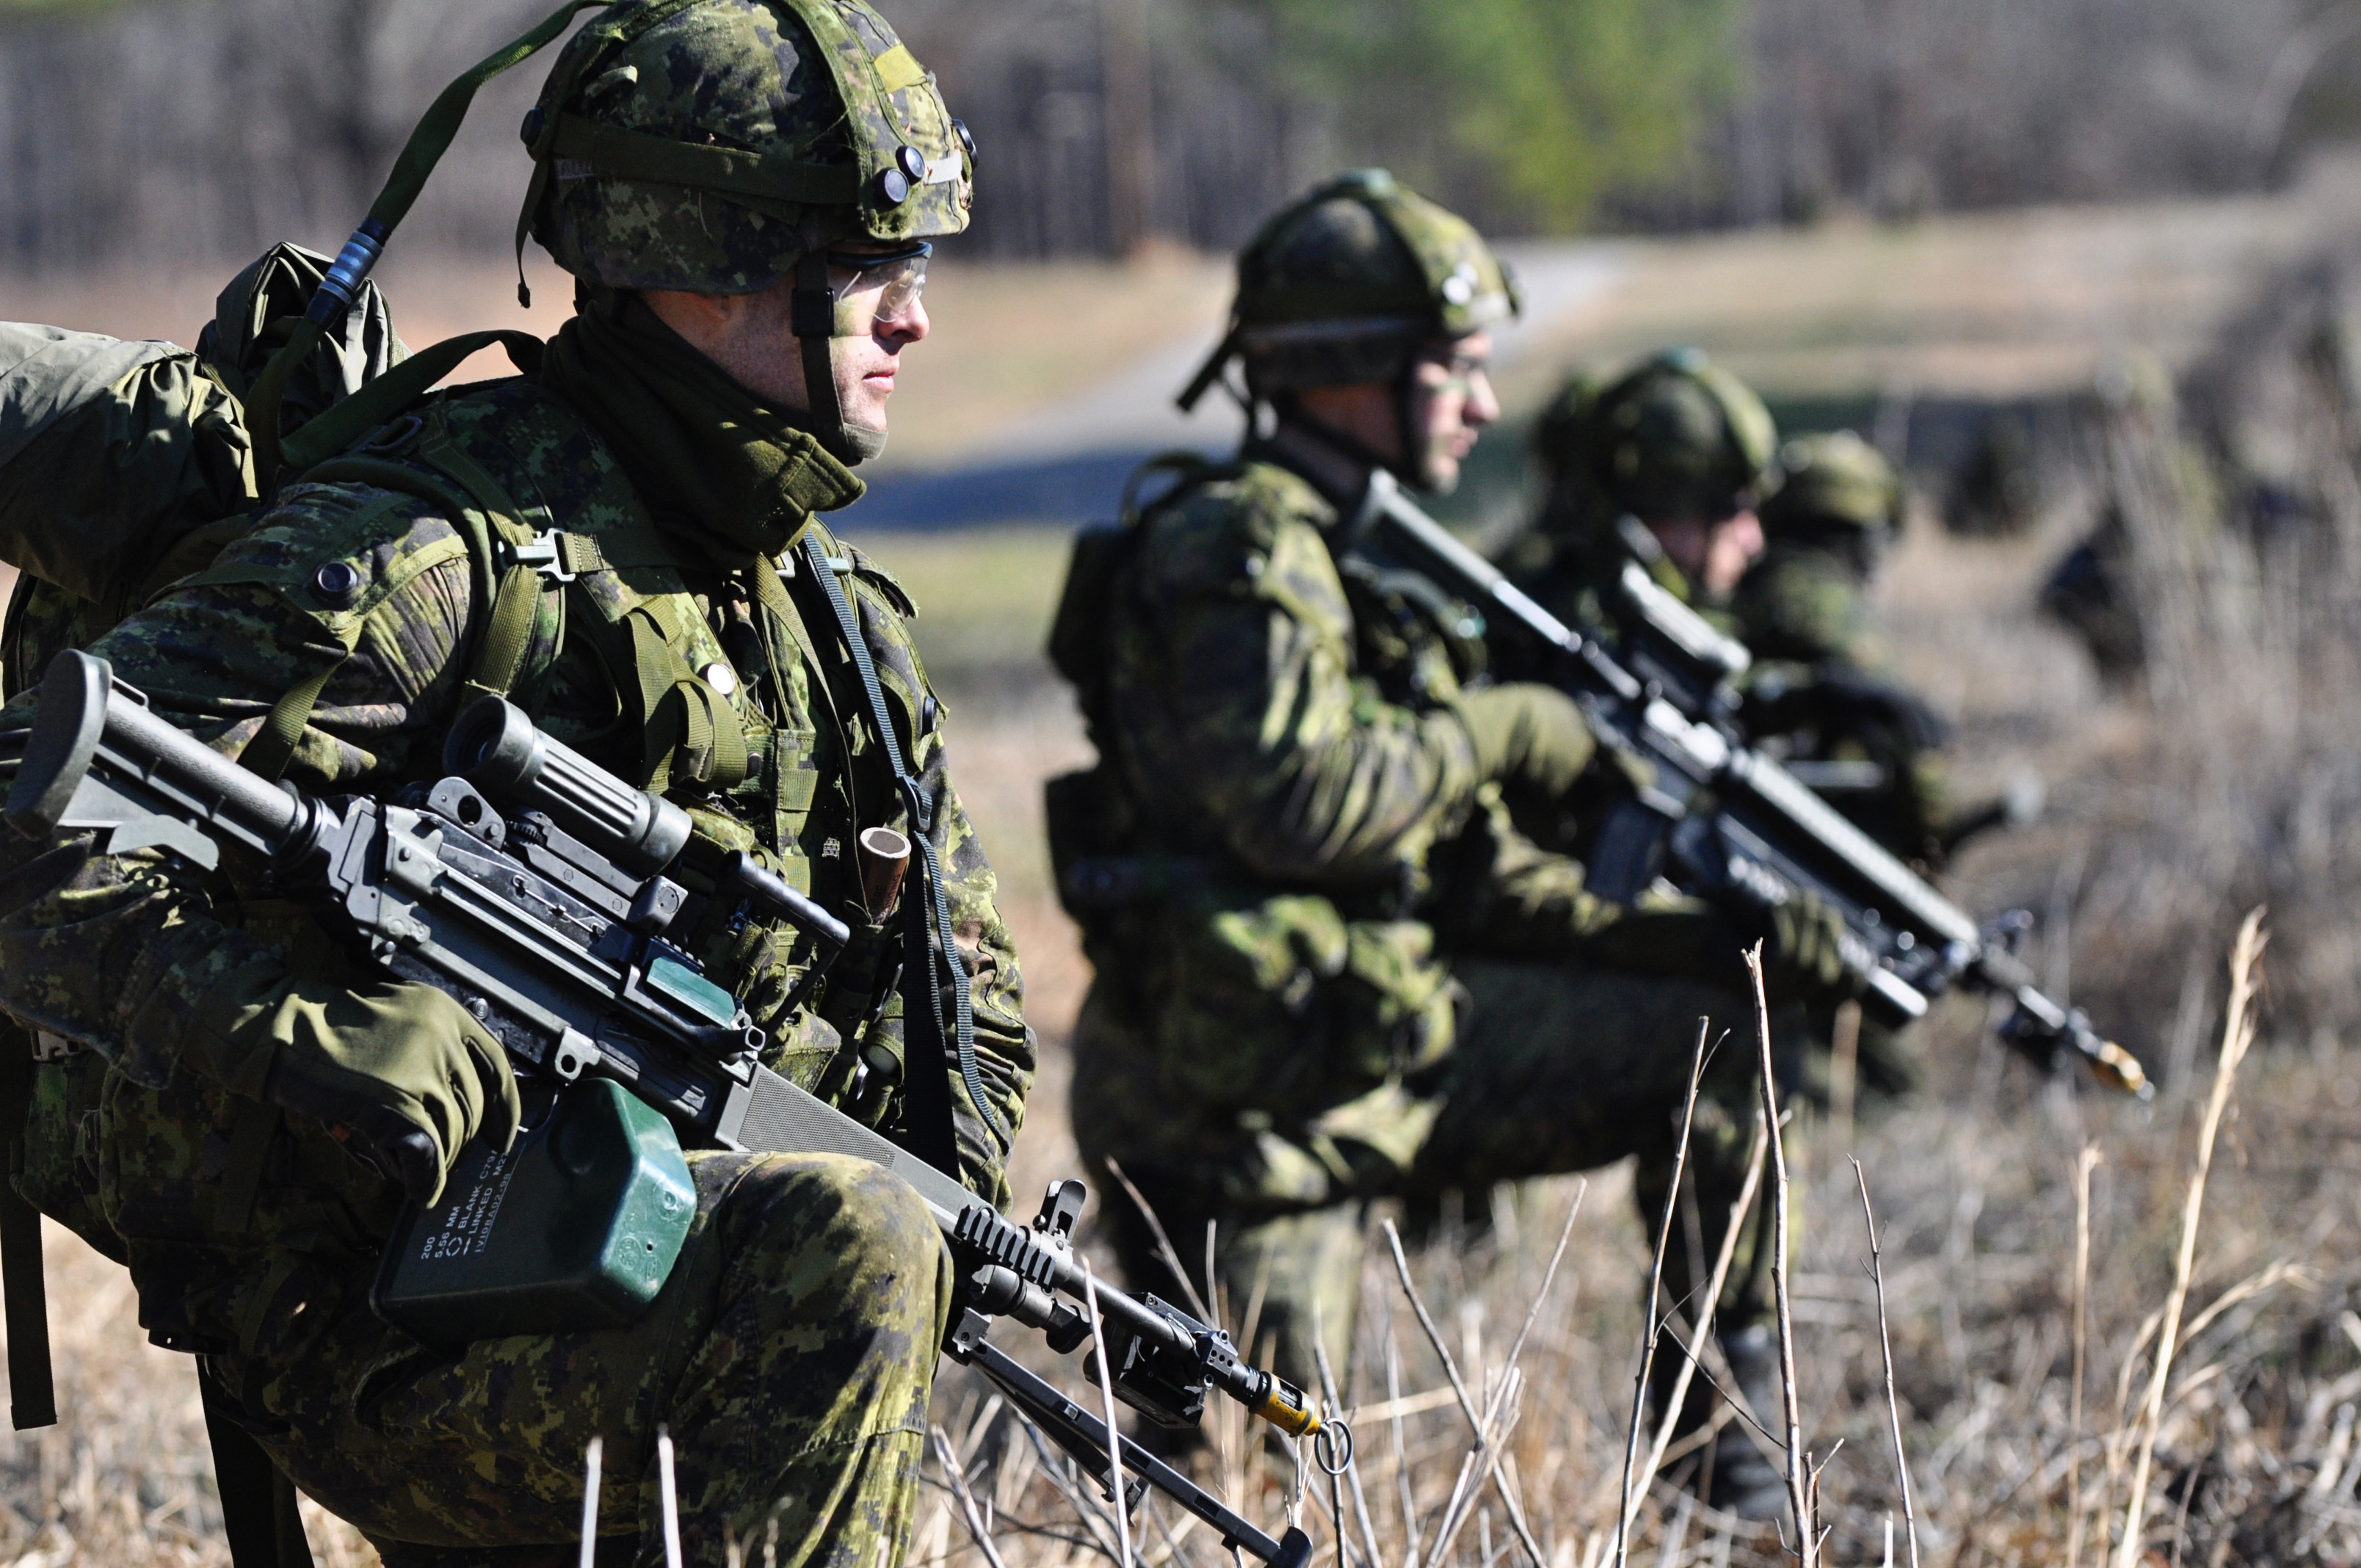 Canadian forces in Iraq mount pressure on Islamic State